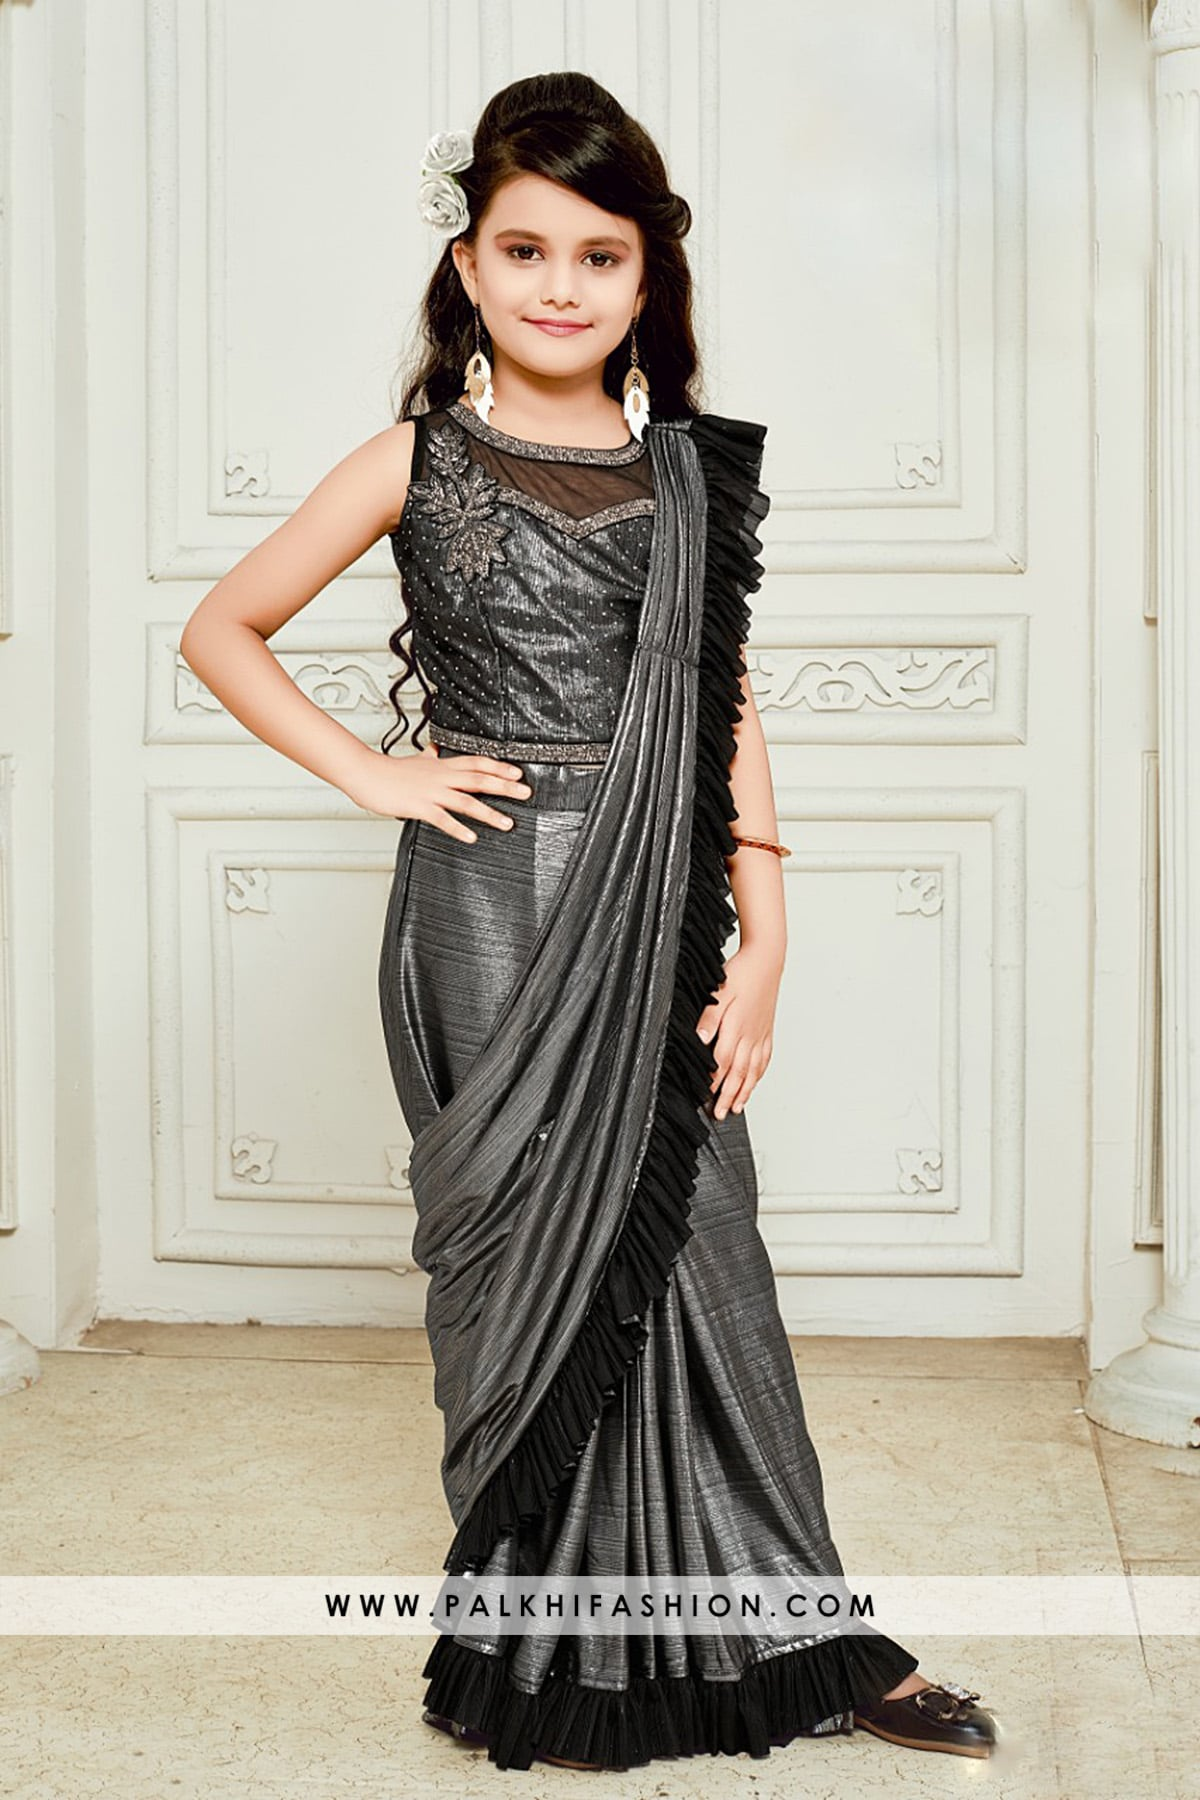 Bold and Beautiful GreyBlack Ready Made Saree For Girls